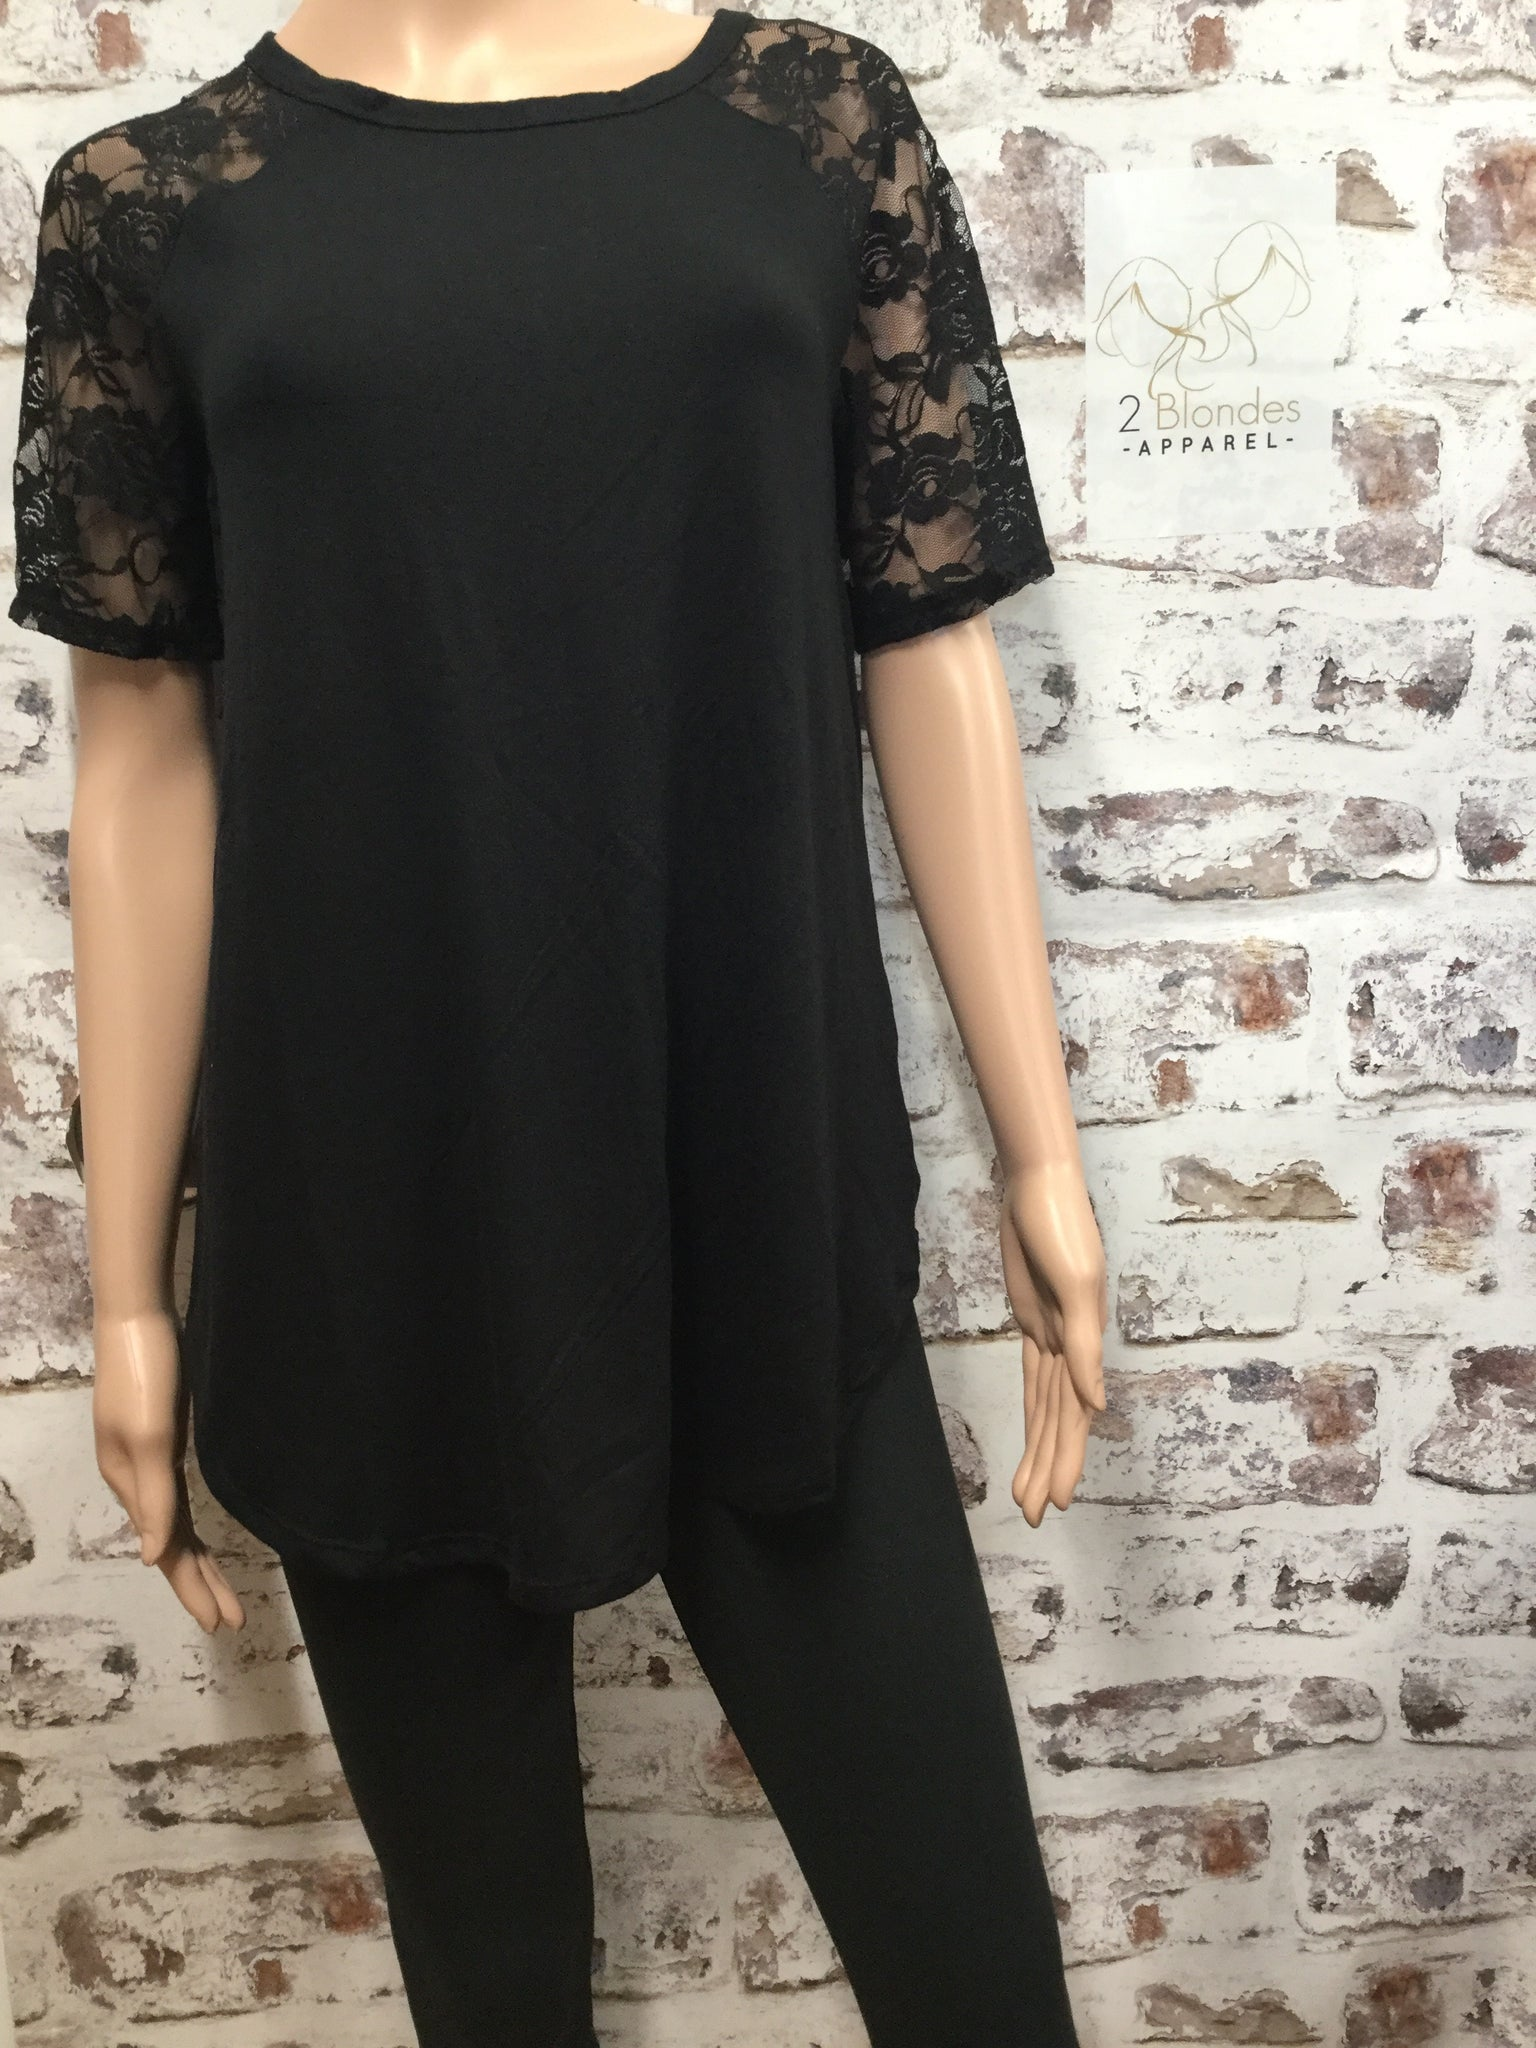 New Round Bottom Lace Short Sleeve Top